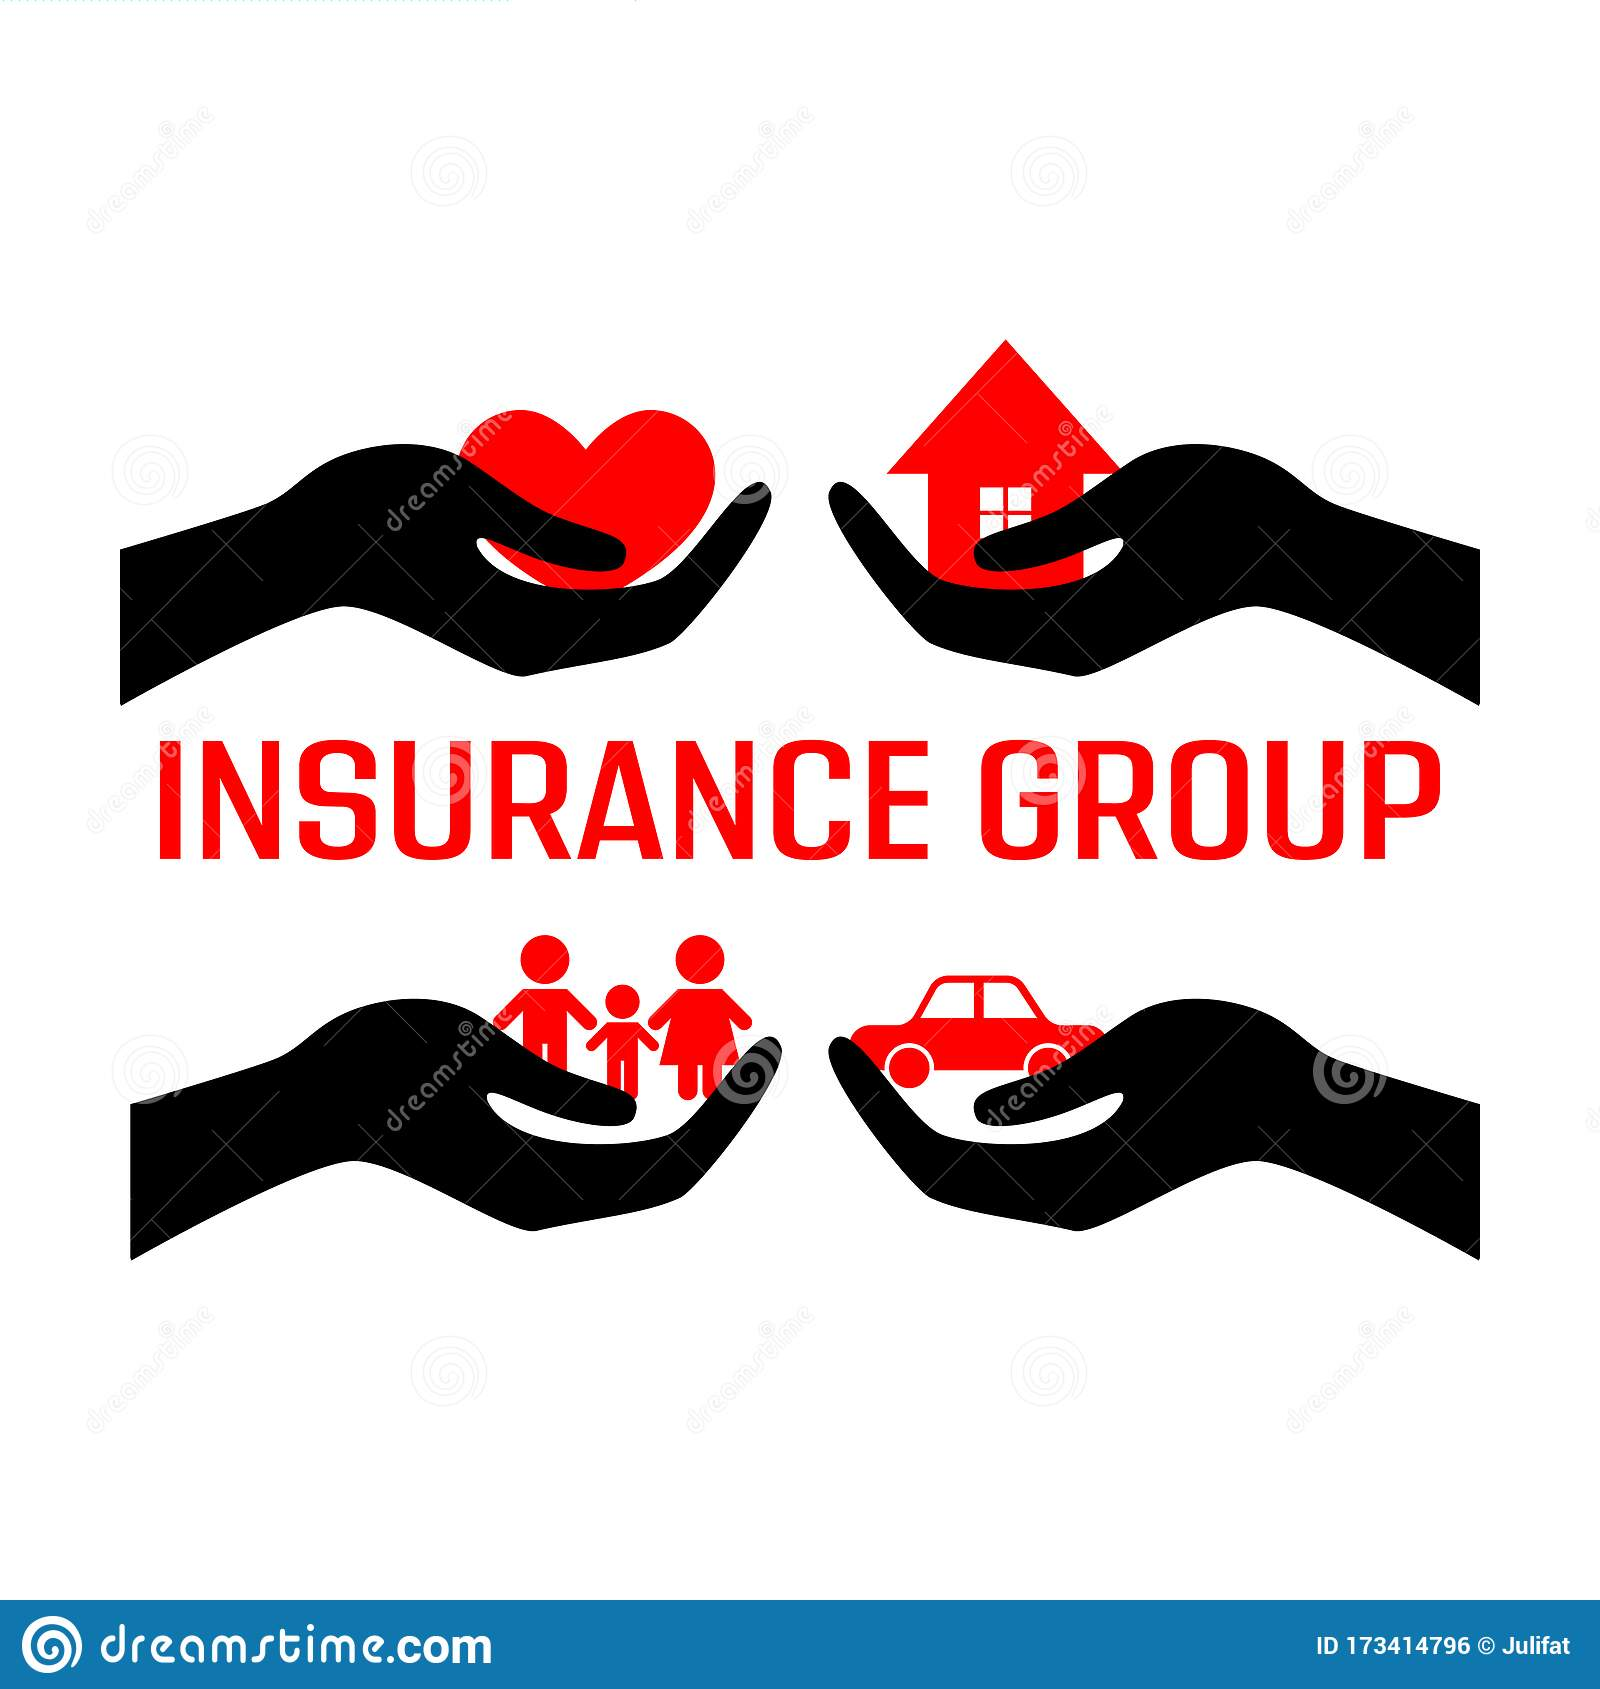 Start by filling out the tokens on the right, then take a few moments to remove any irrelevant services or add new ones based on your client's needs. Logo For Insurance Business Business Idea Concept Vector Emblem Vector Illustration Abstract Logo Icon Design Template Modern Stock Vector Illustration Of Abstract Businessman 173414796